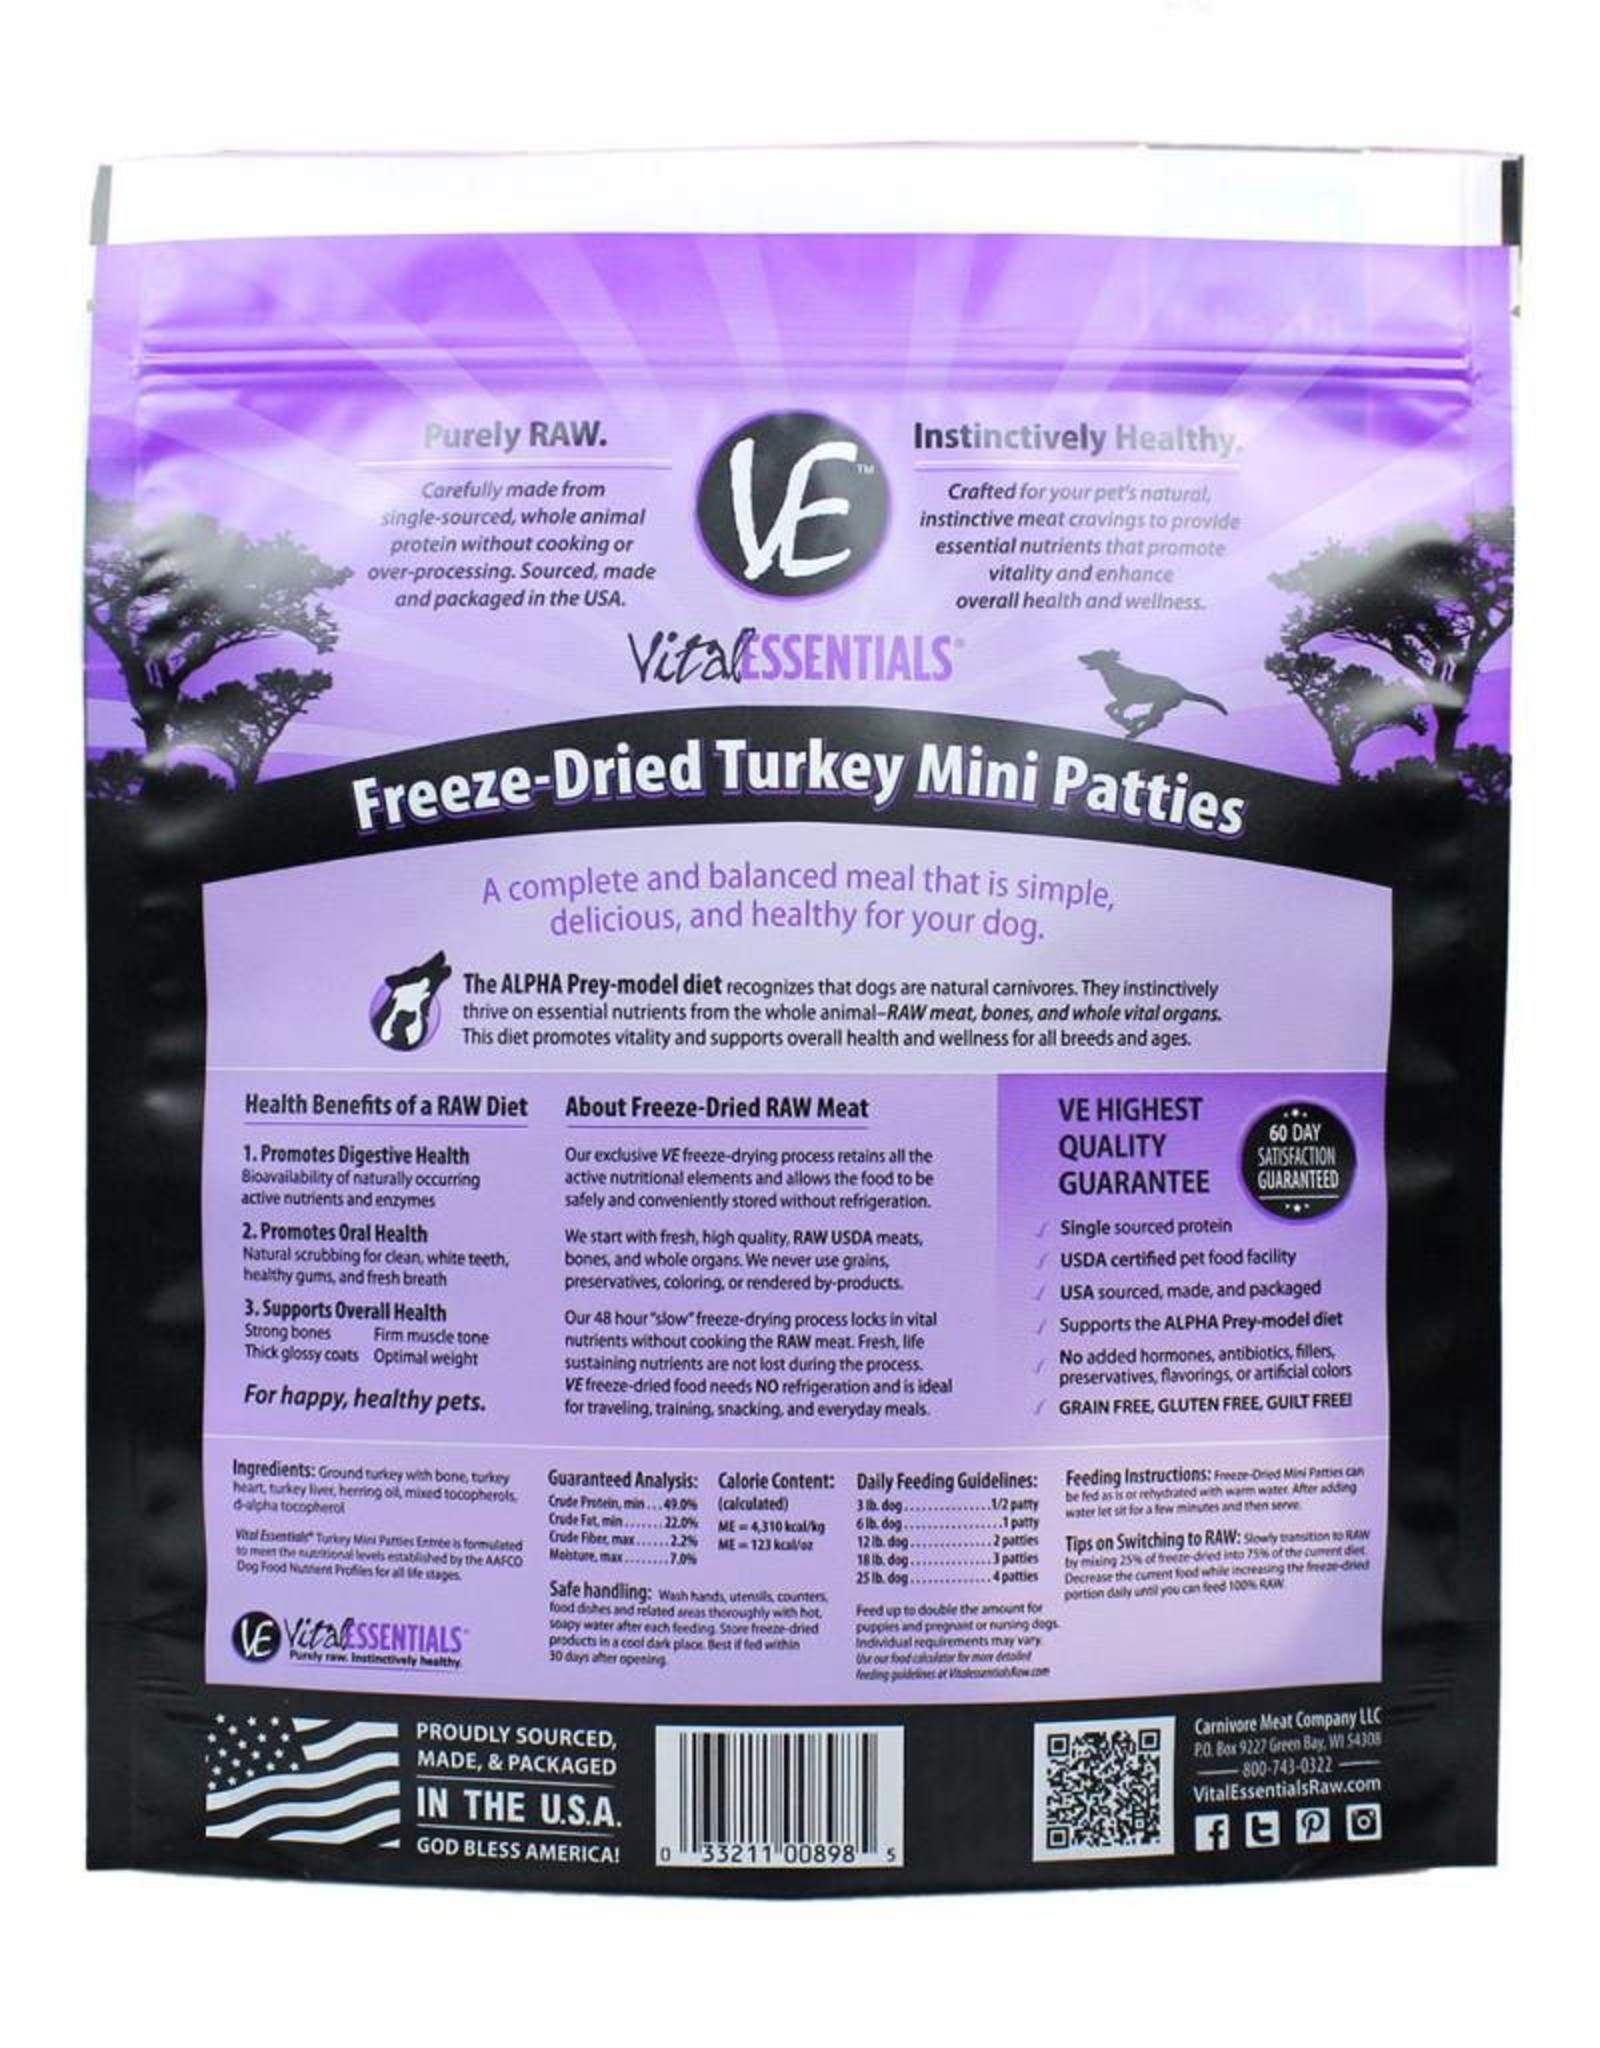 Vital Essentials Vital Essentials Dog Freeze-Dried Turkey Mini Patties 1lb